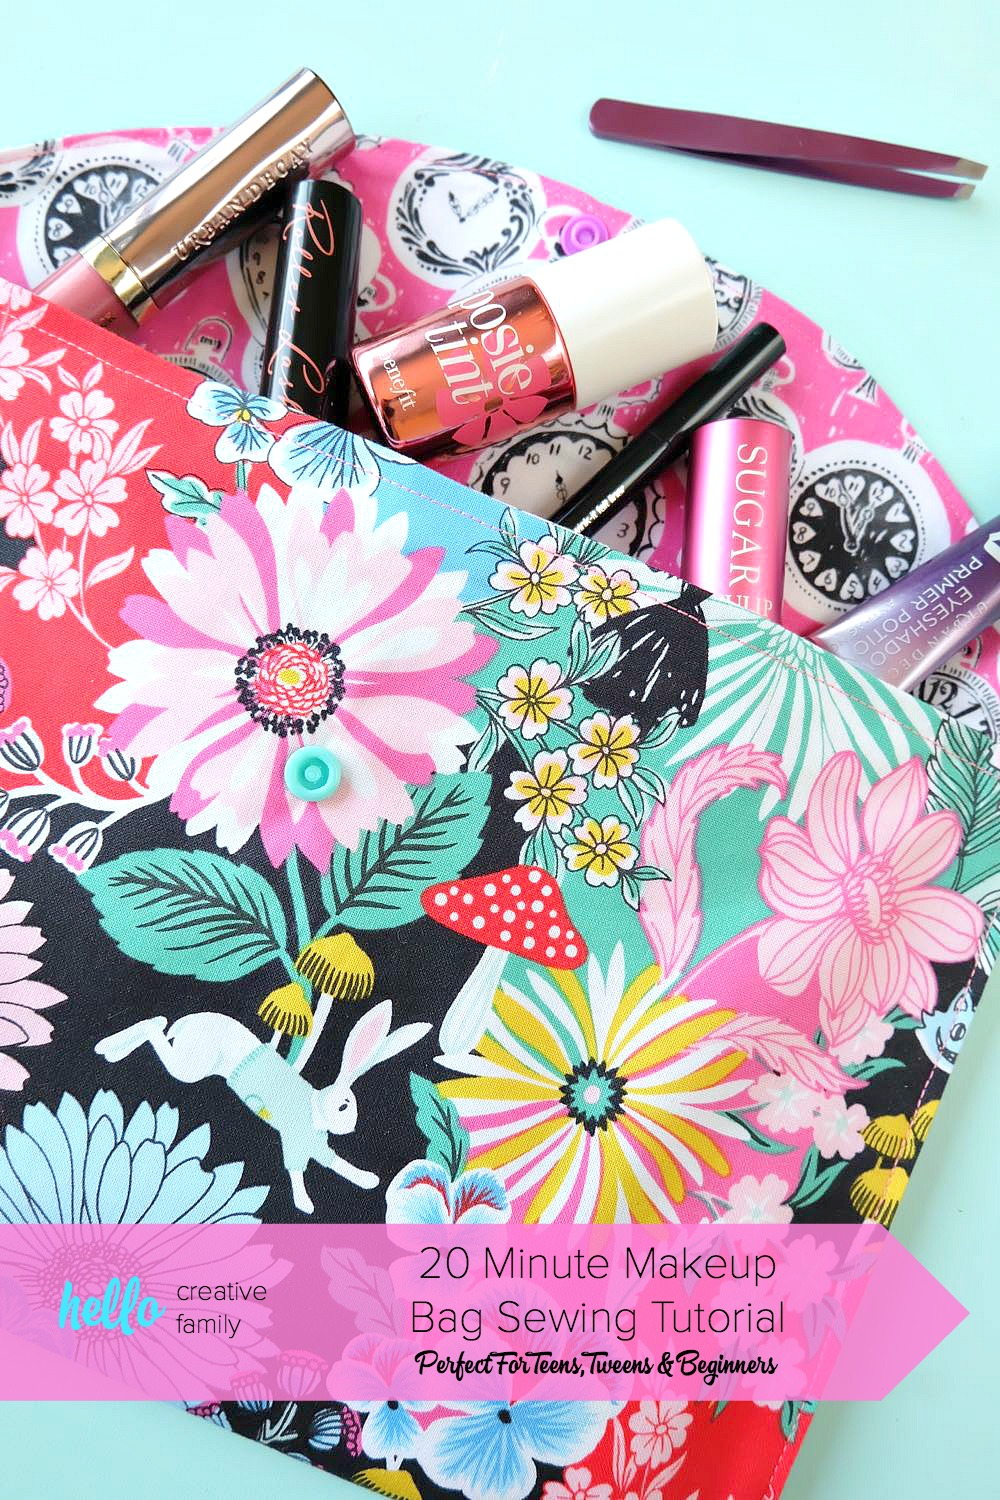 20 Minute Makeup Bag Sewing Tutorial- Perfect for Teens and Beginners